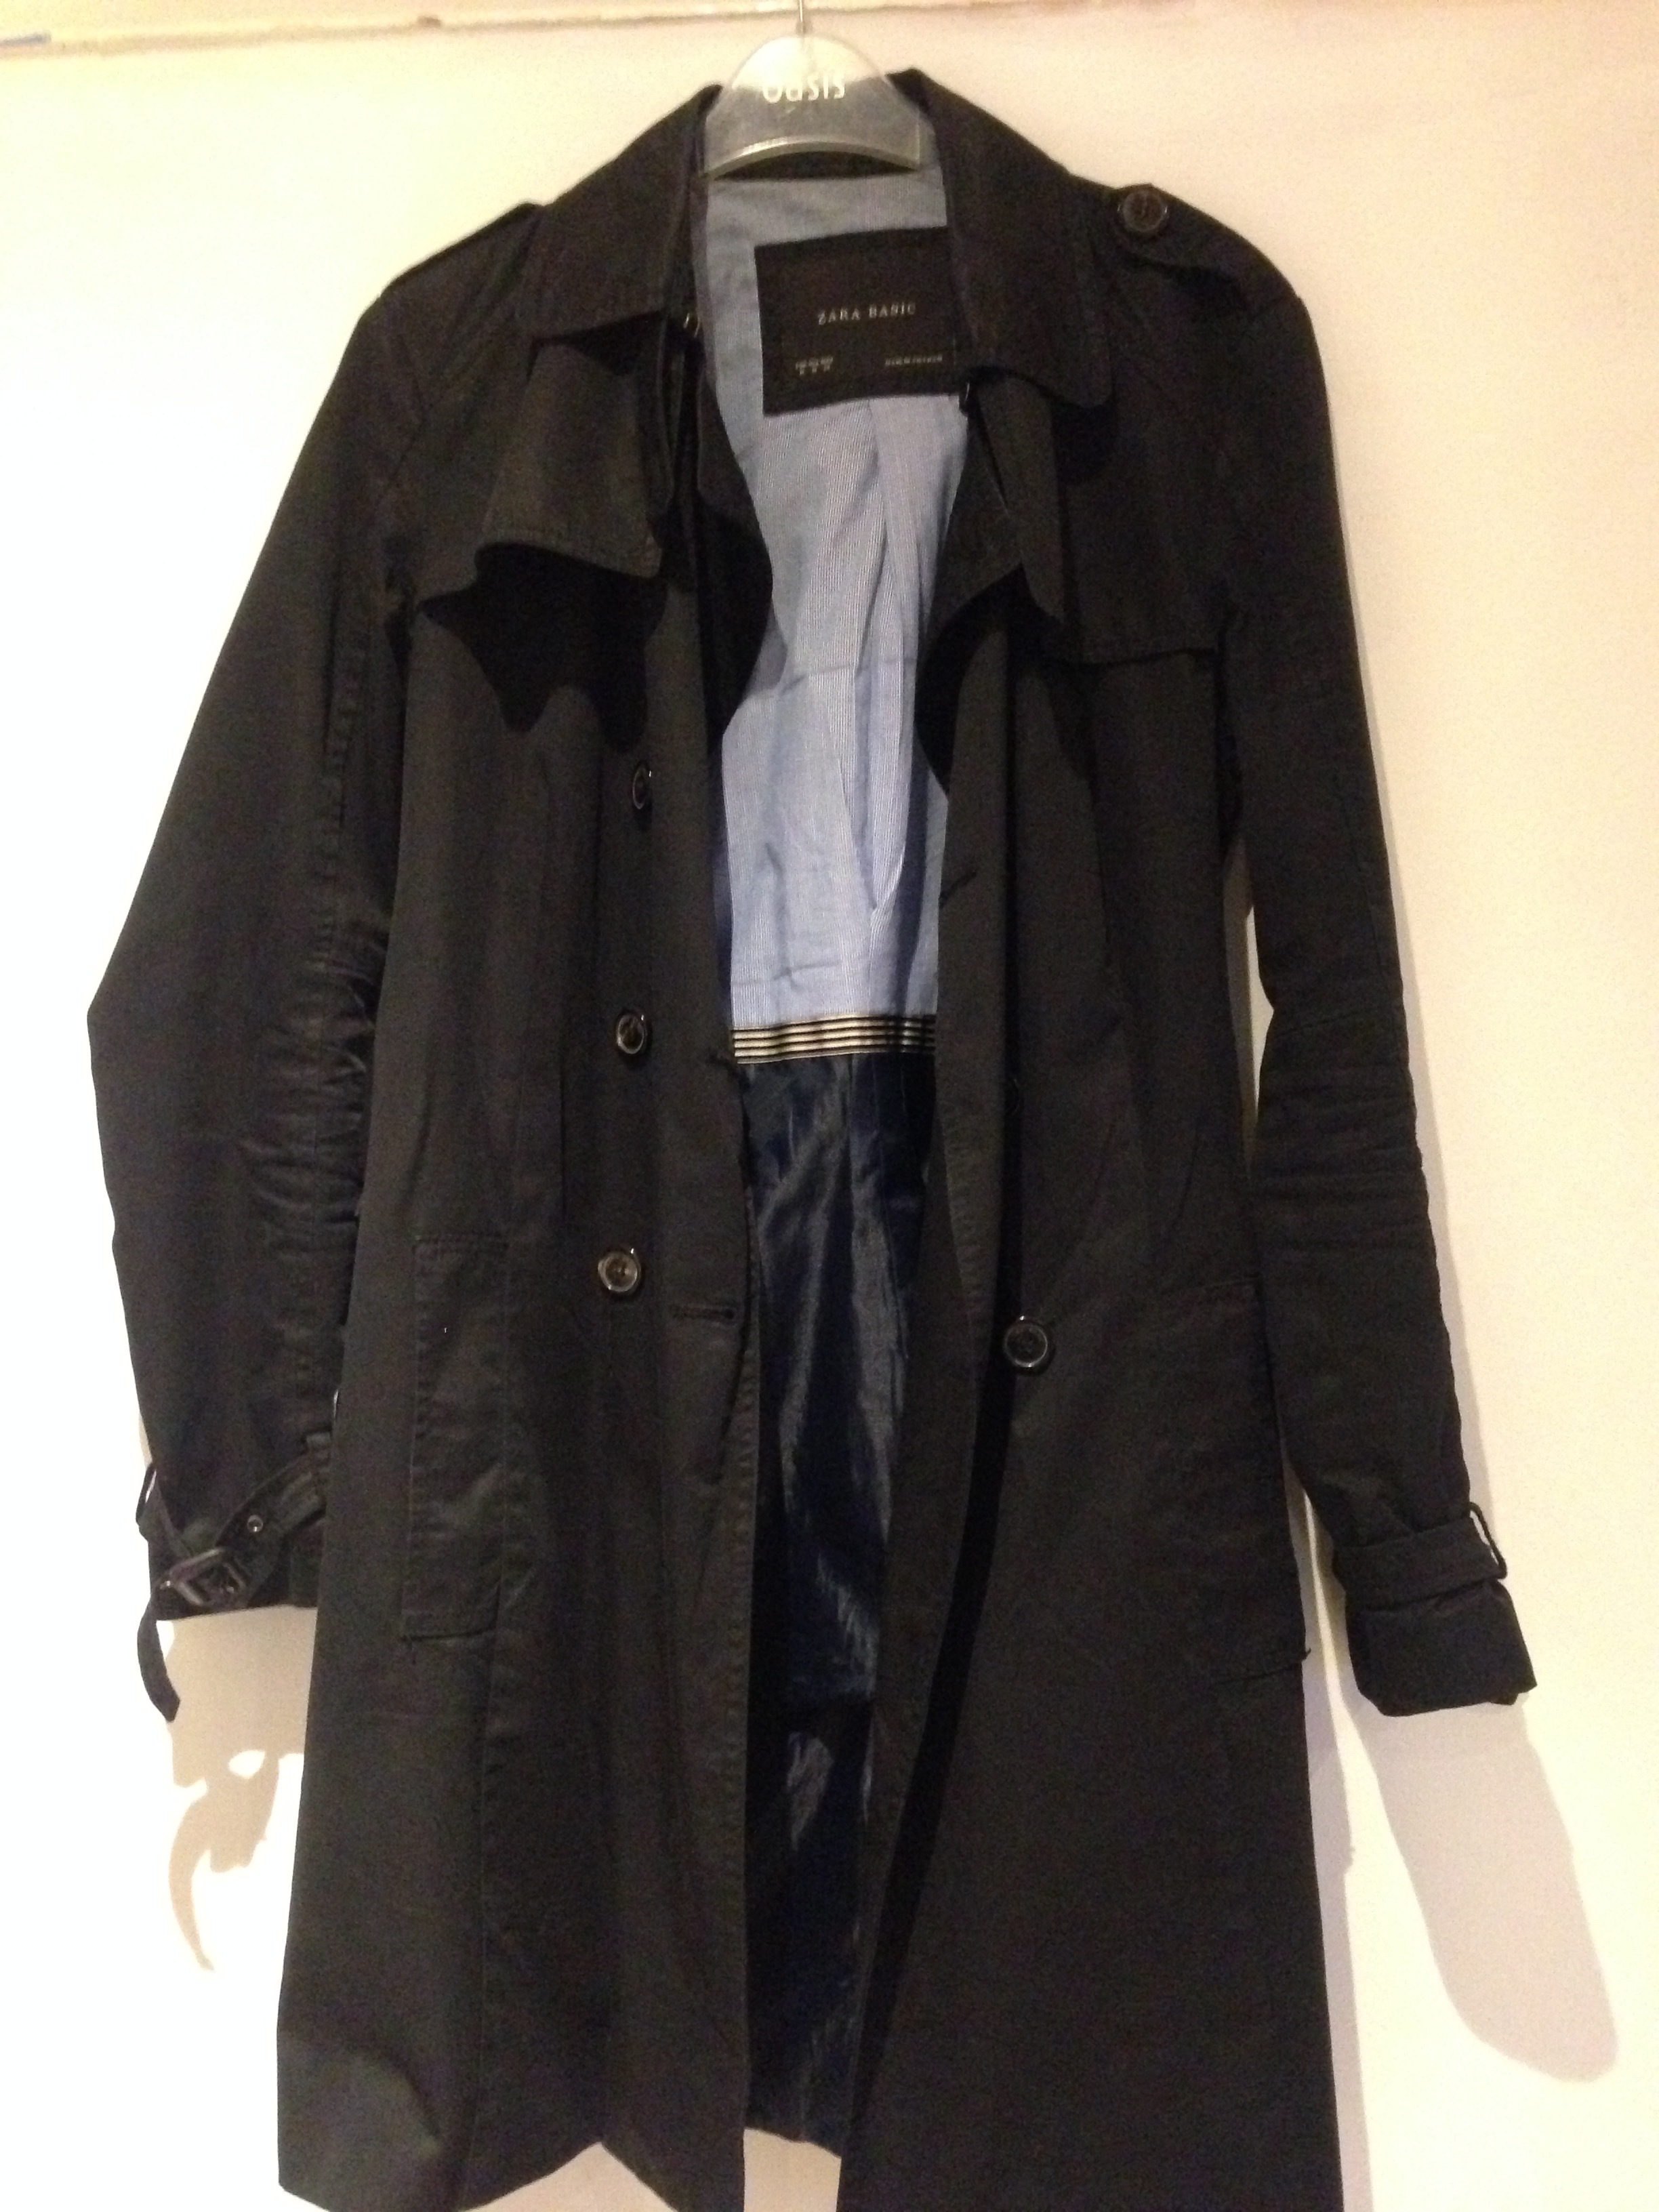 A Zara trench coat I'm also selling